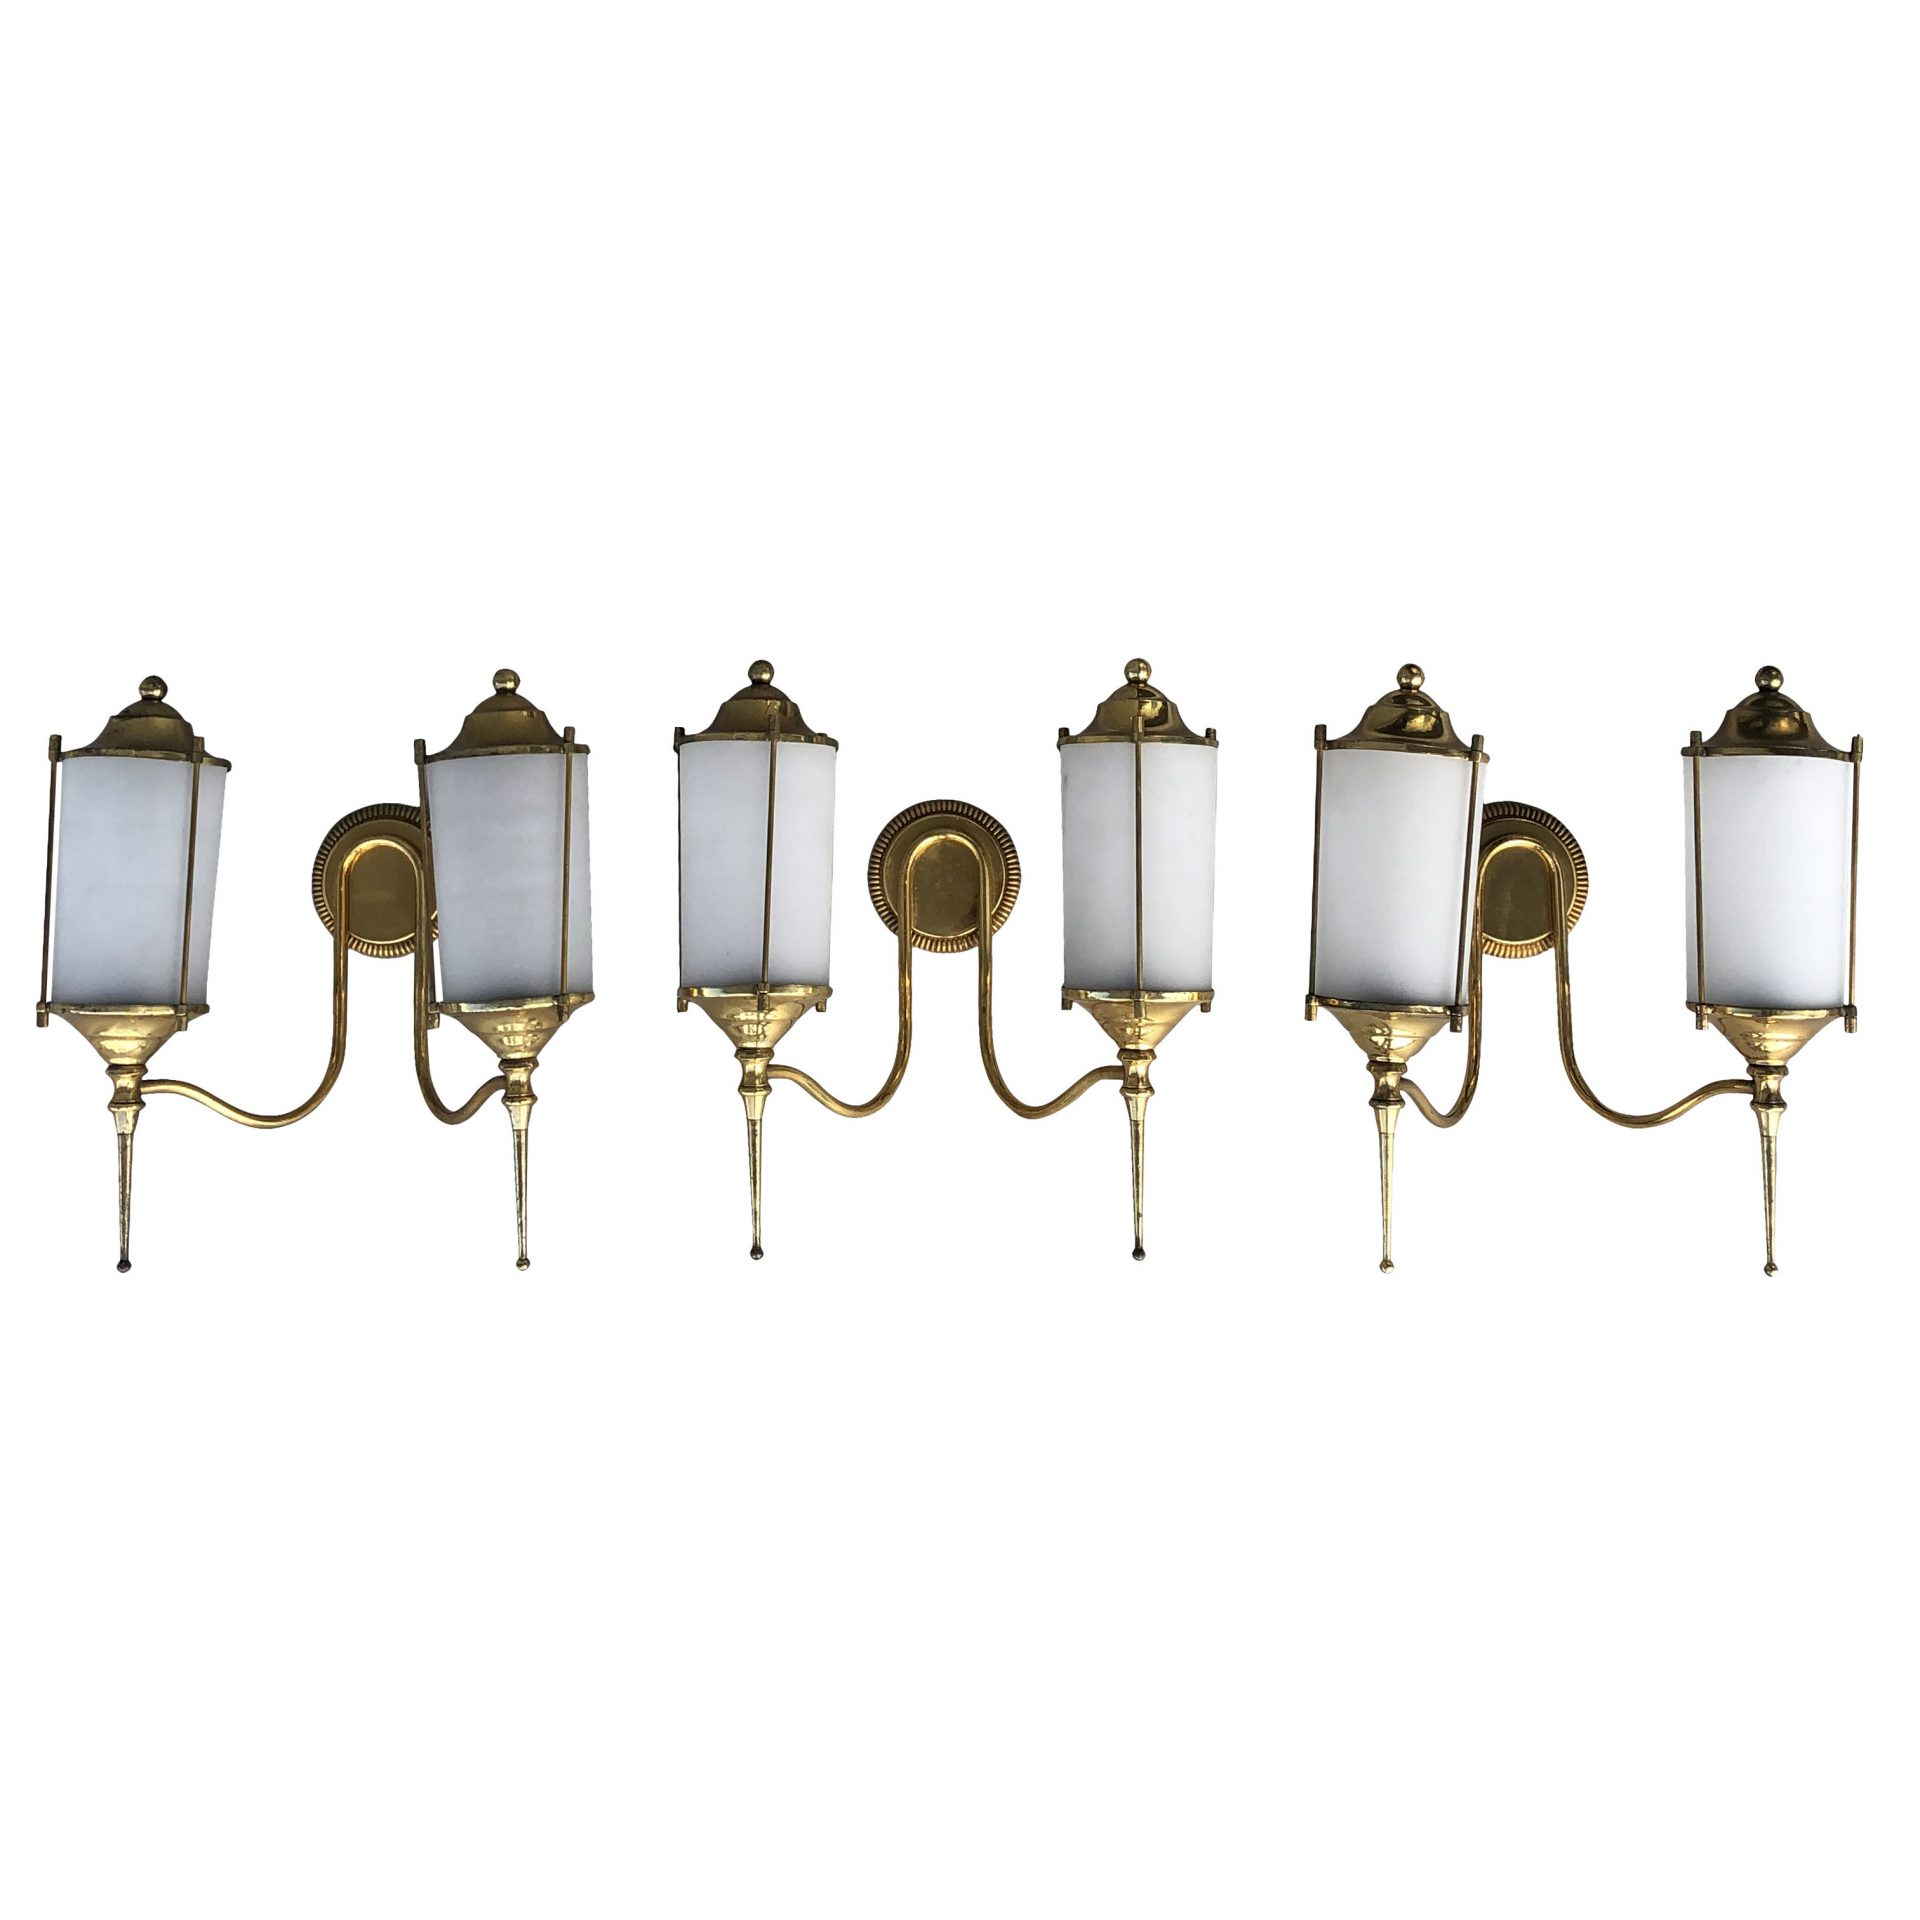 20th Century Set of Three Double Light Appliqués – Italian Brass Wall Sconces